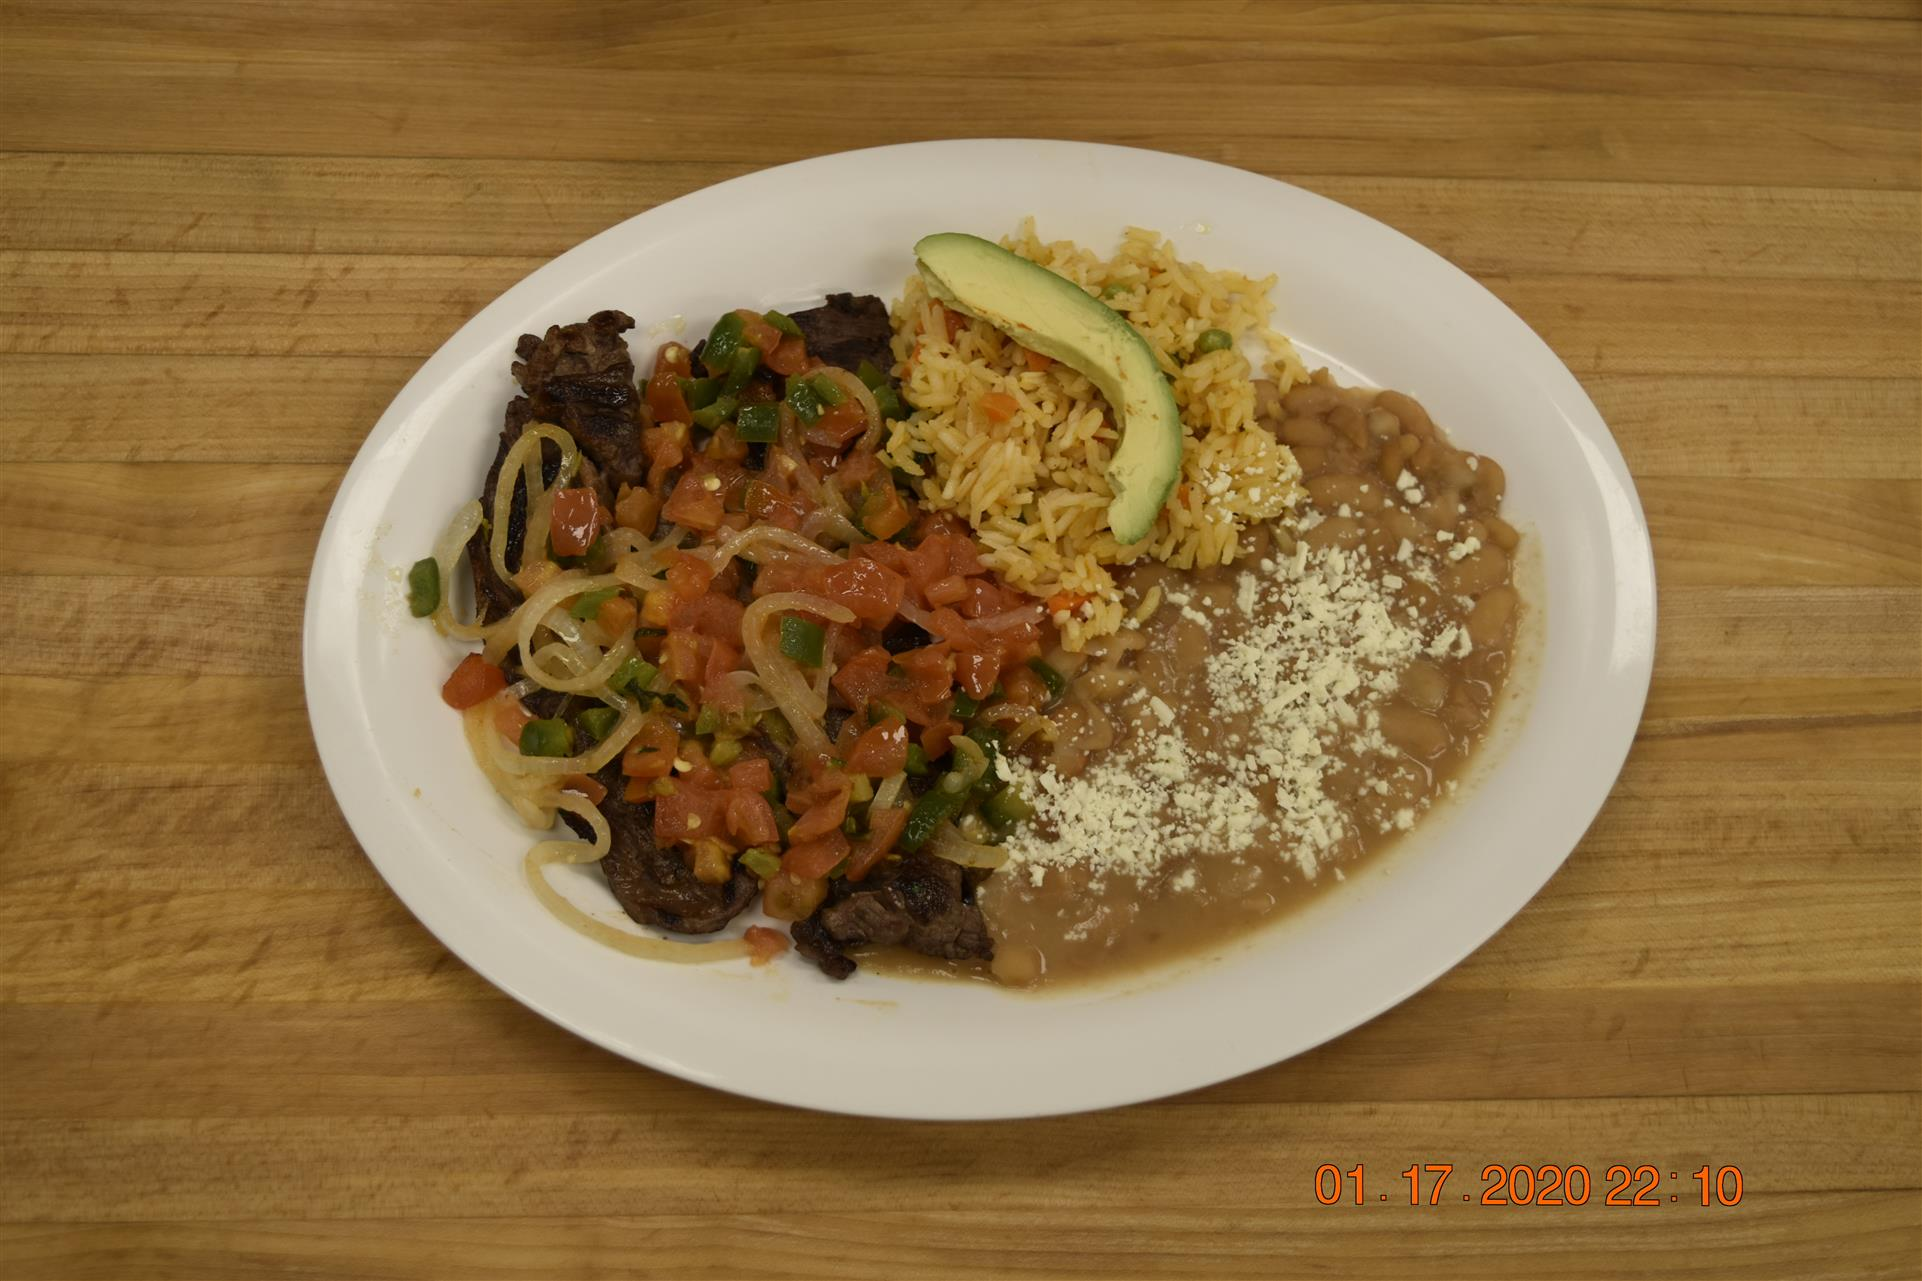 meat dish with side of rice and beans